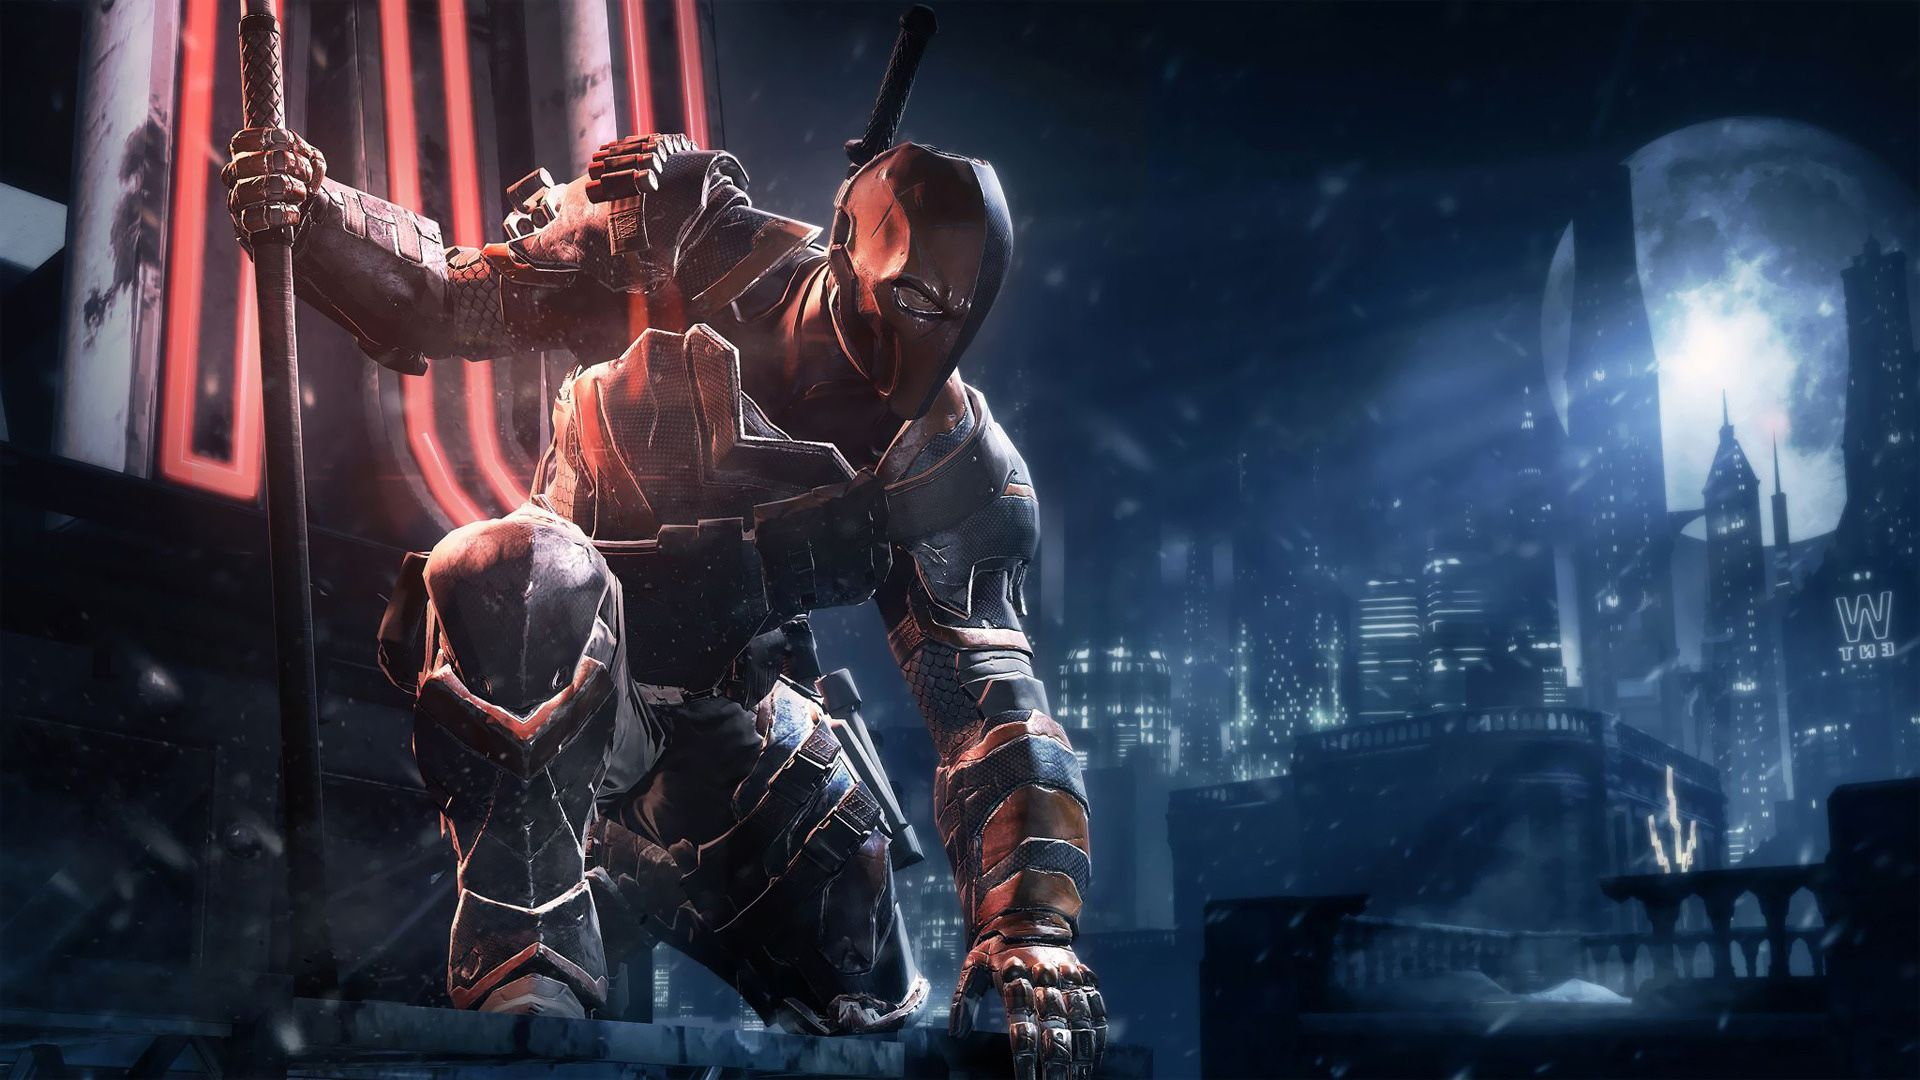 Deathstroke Batman Arkham Origins HD Games Wallpapers for Mobile and 1920x1080